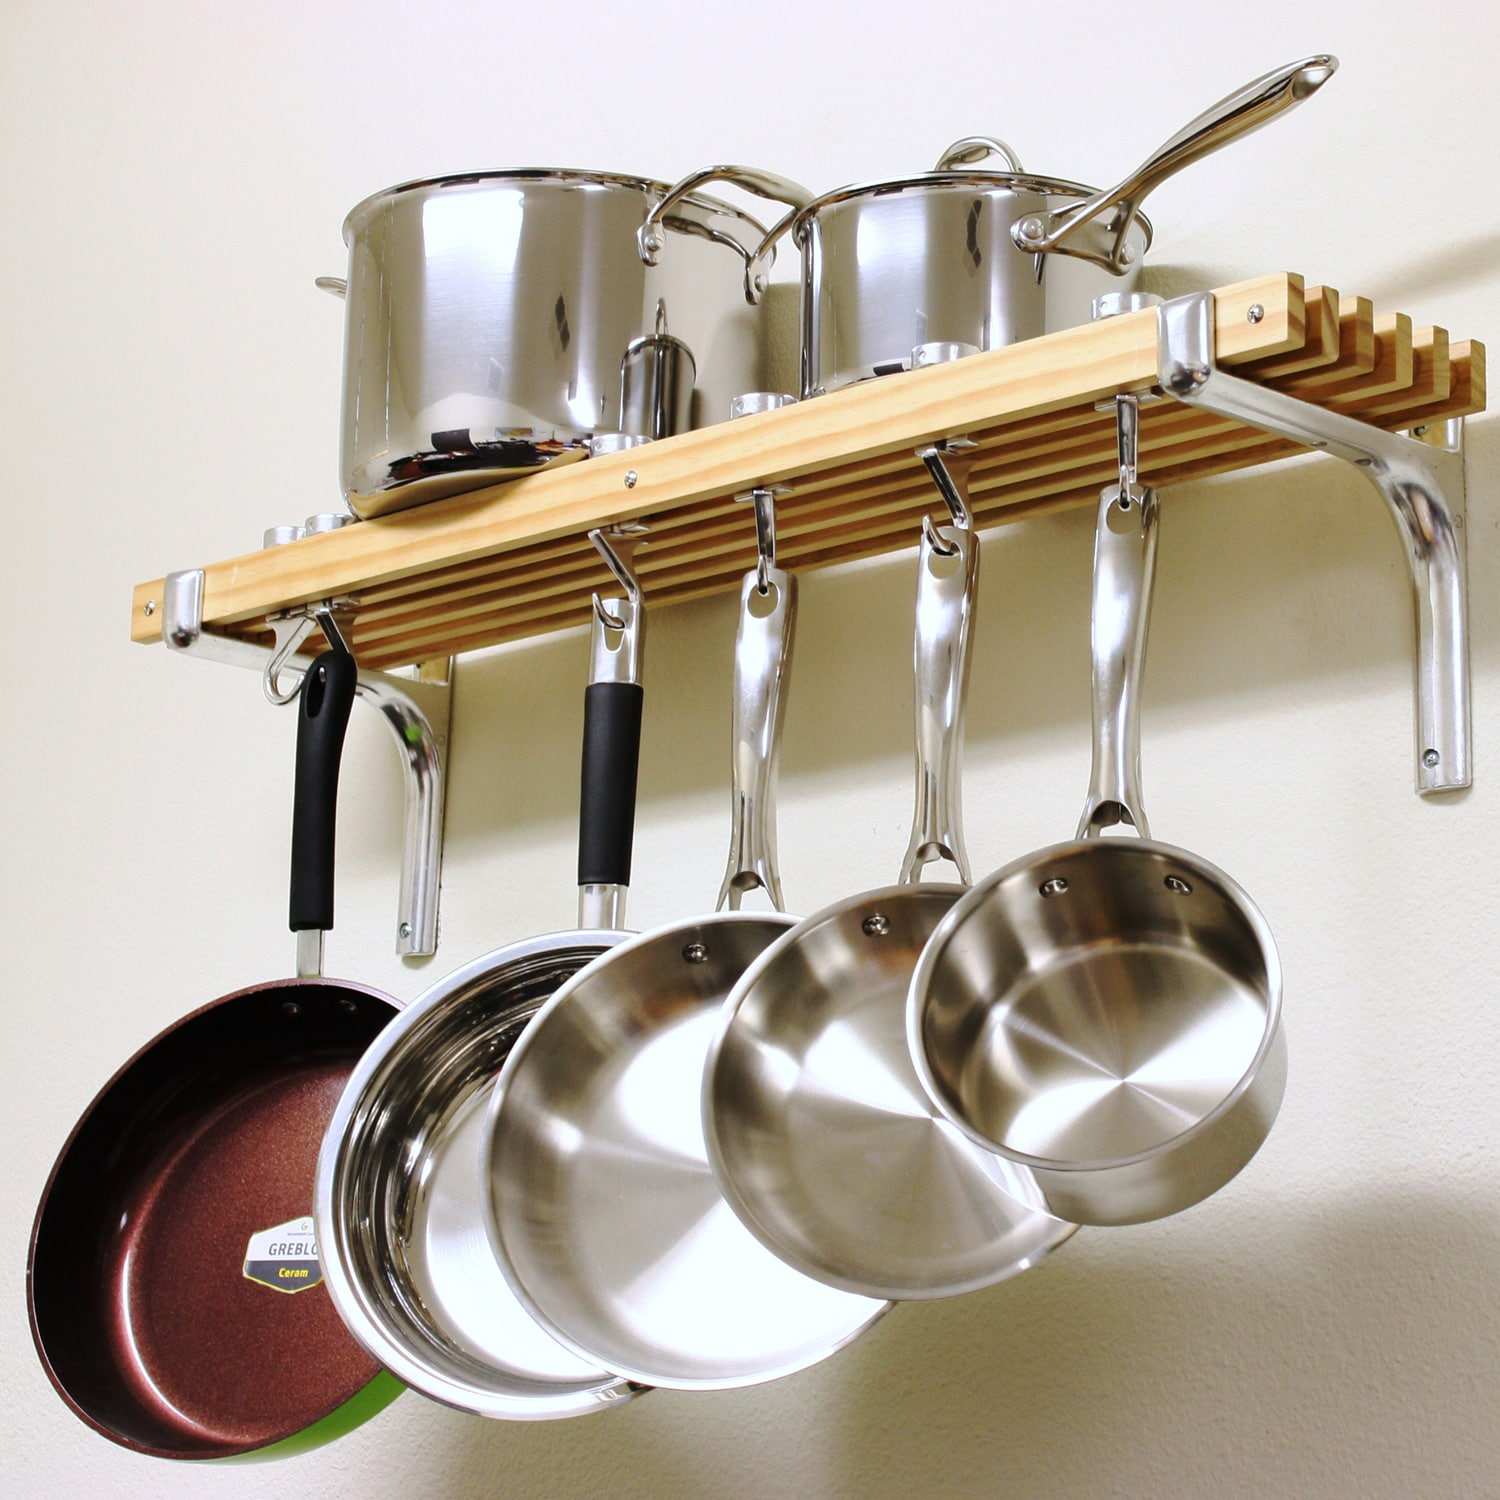 Wooden Pot Rack Kitchen Wall Mounted Cooks Hanging Pan Storage Dish Cookware Bar